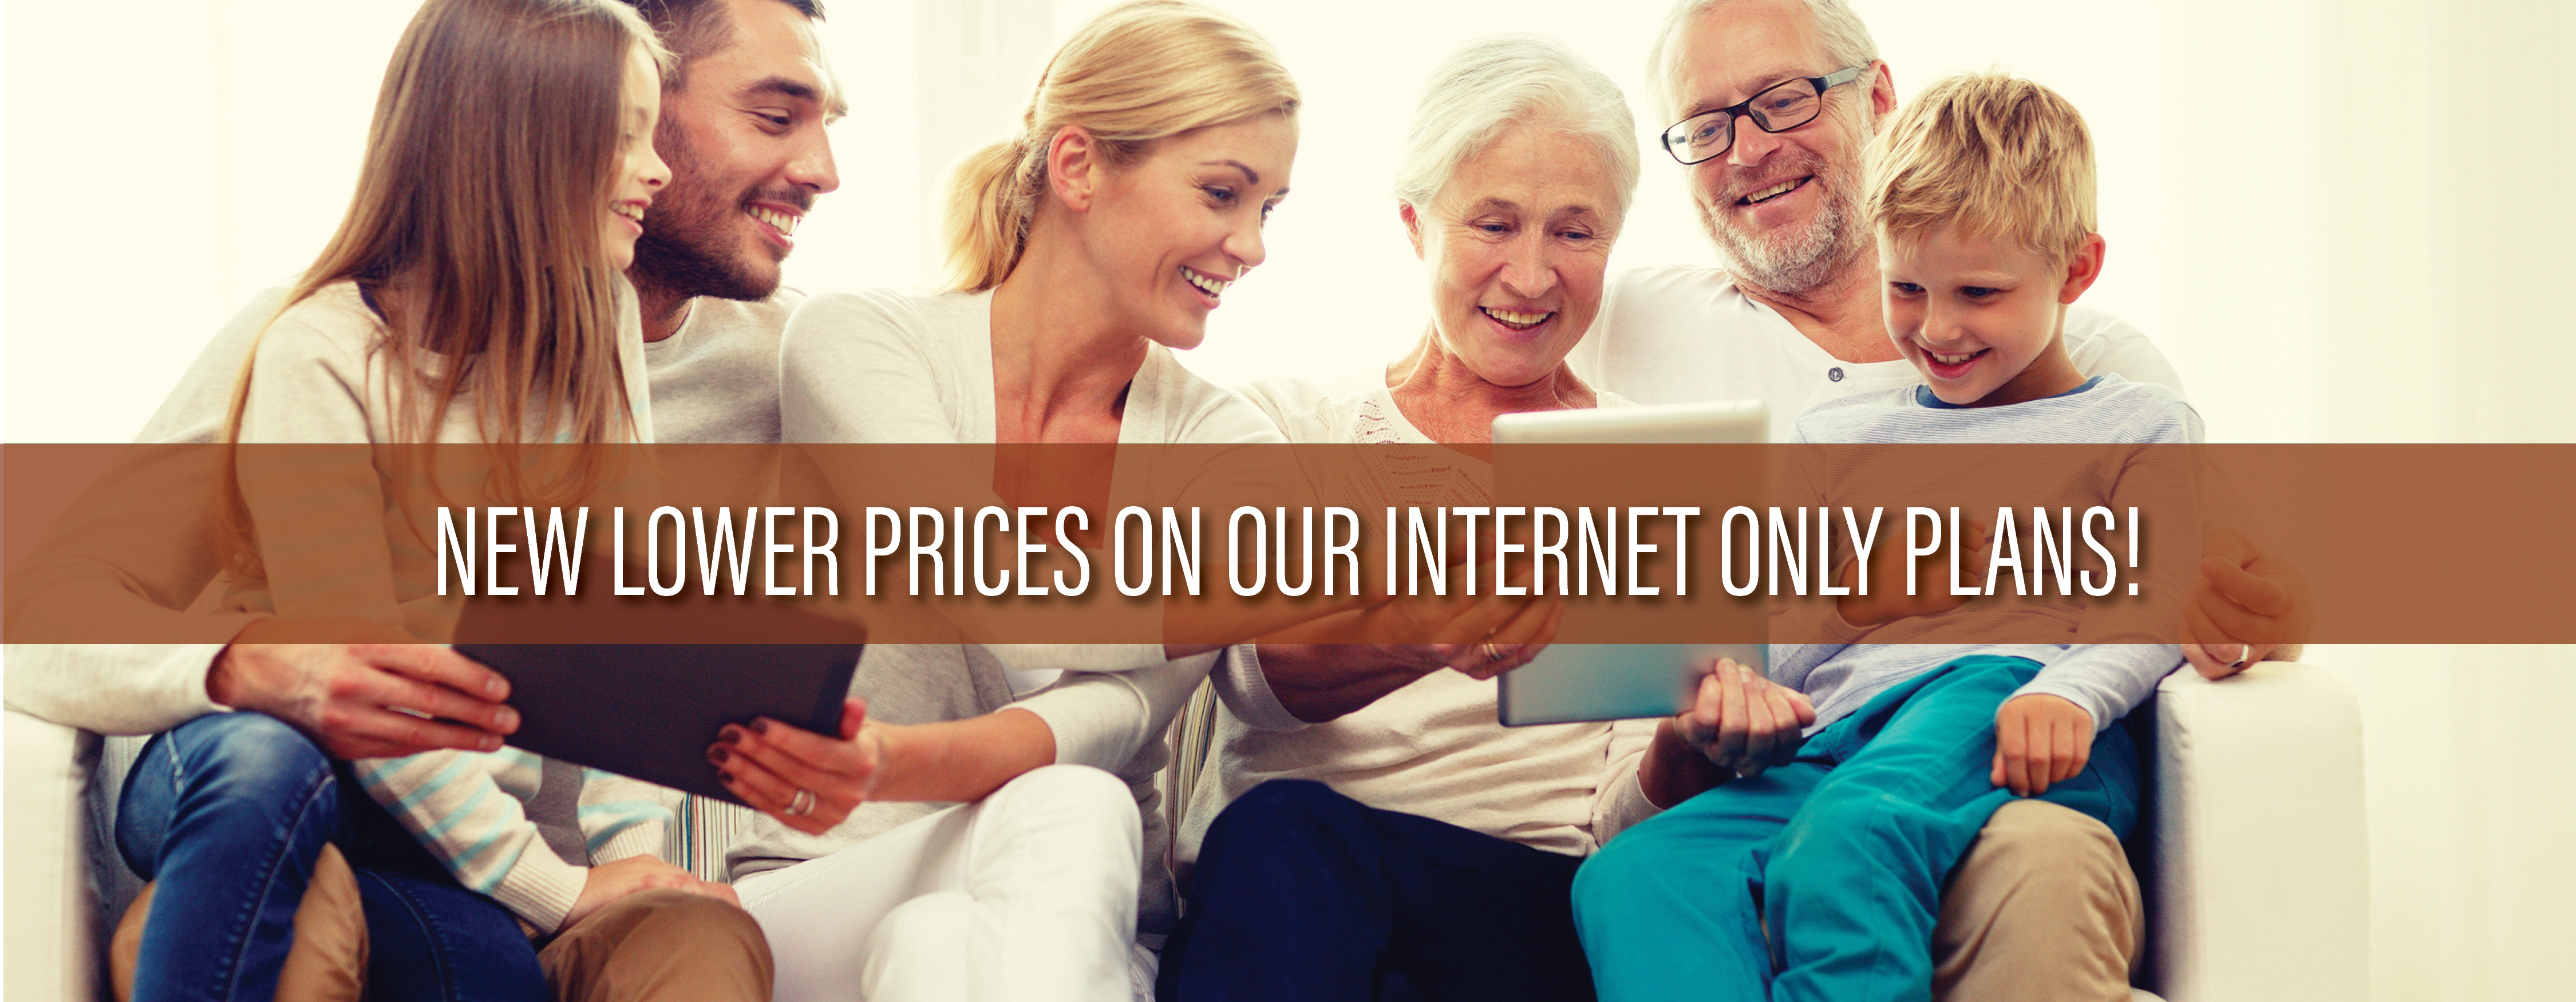 Our internet prices are going down!!